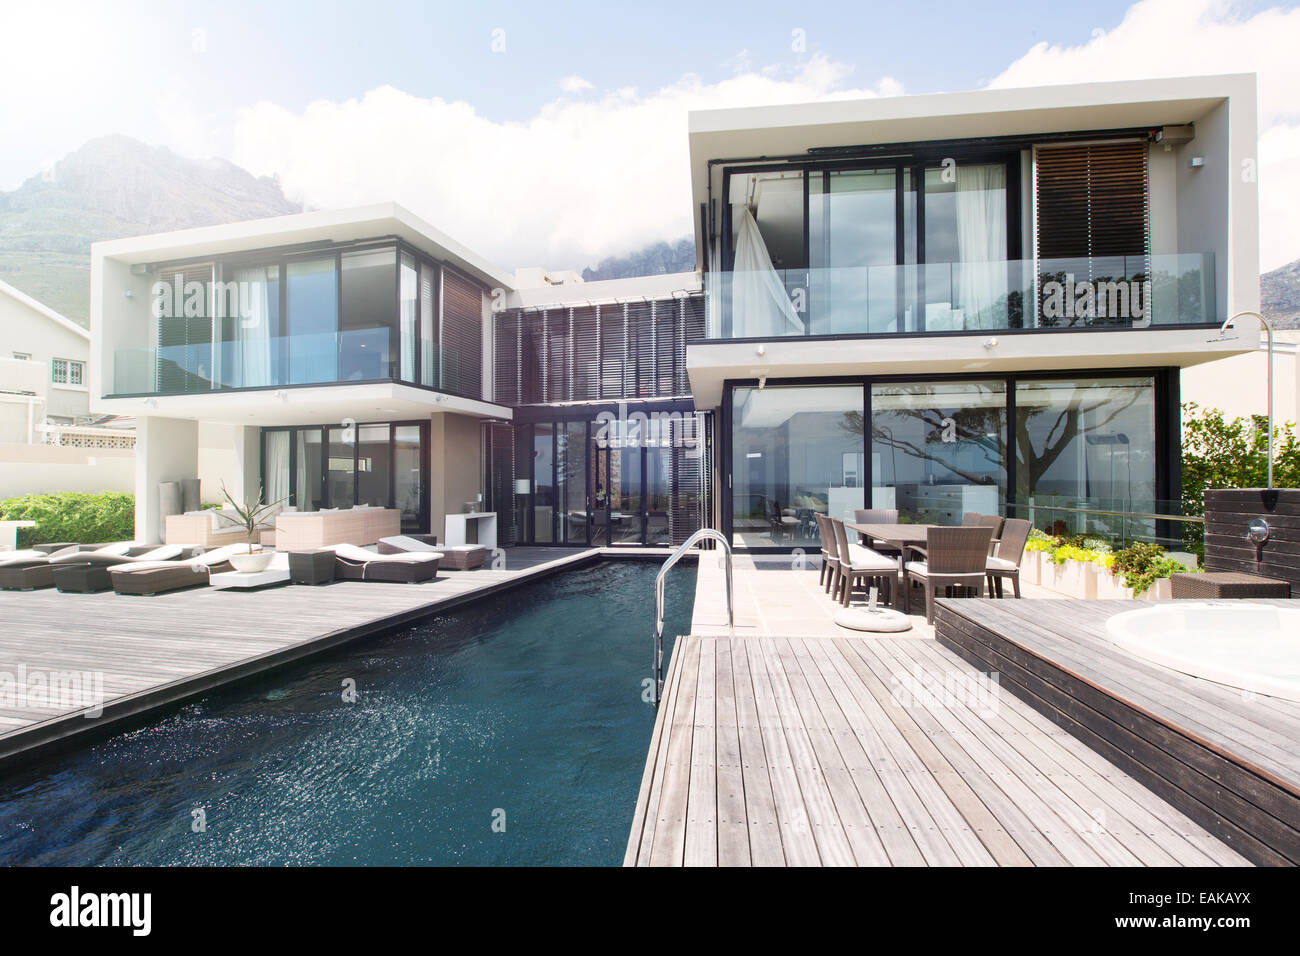 Pool Sessel Luxus Villa With Pool Stockfotos And Villa With Pool Bilder Alamy